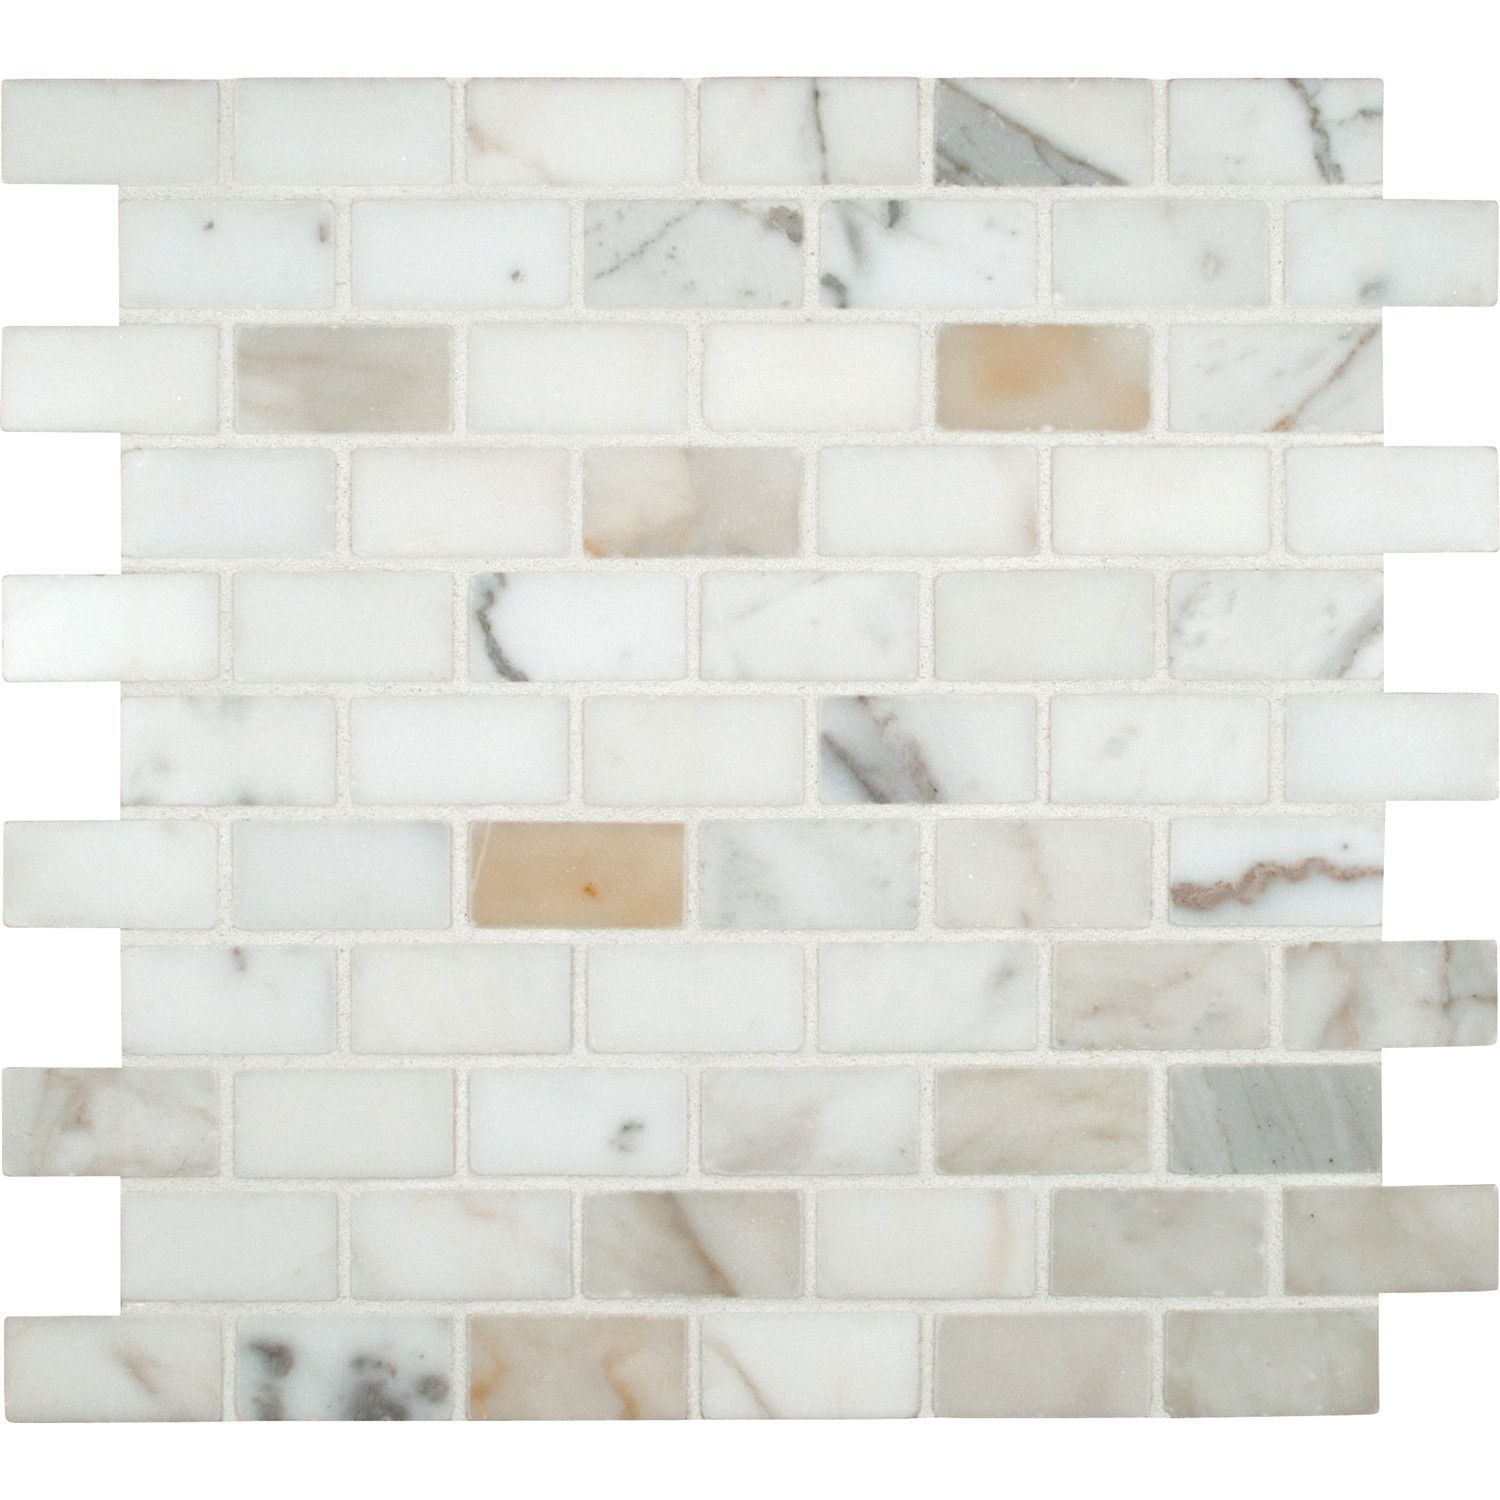 Calacatta gold mounted 1 x 2 marble subway tile in white ms international calacatta gold mounted 1 x 2 marble subway tile dailygadgetfo Images